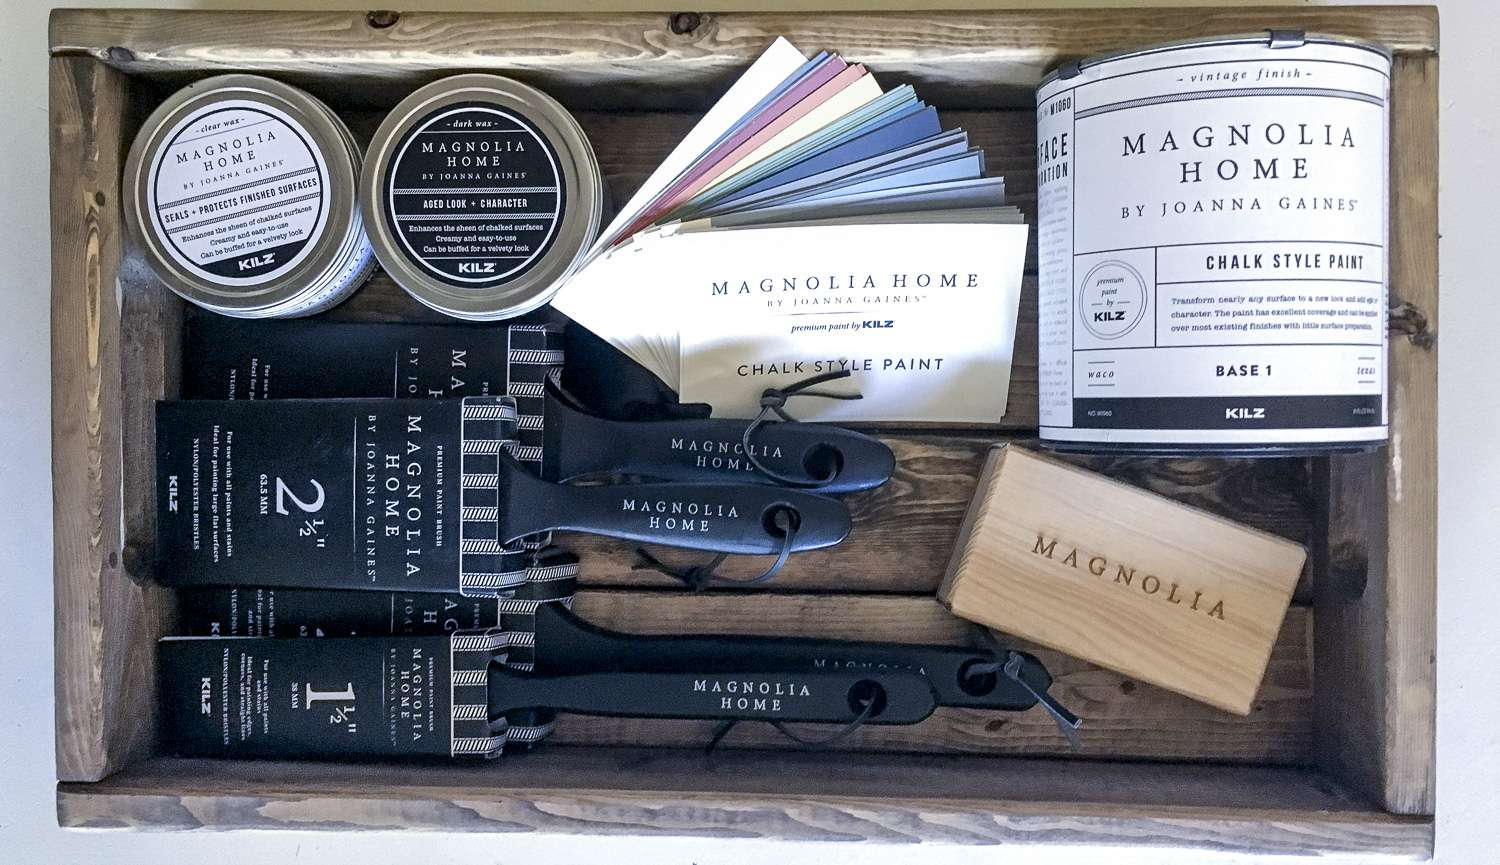 Are you wanting to test our your DIY skills with chalk paint? I've reviewed my experience with Magnolia Home's chalk paint line.